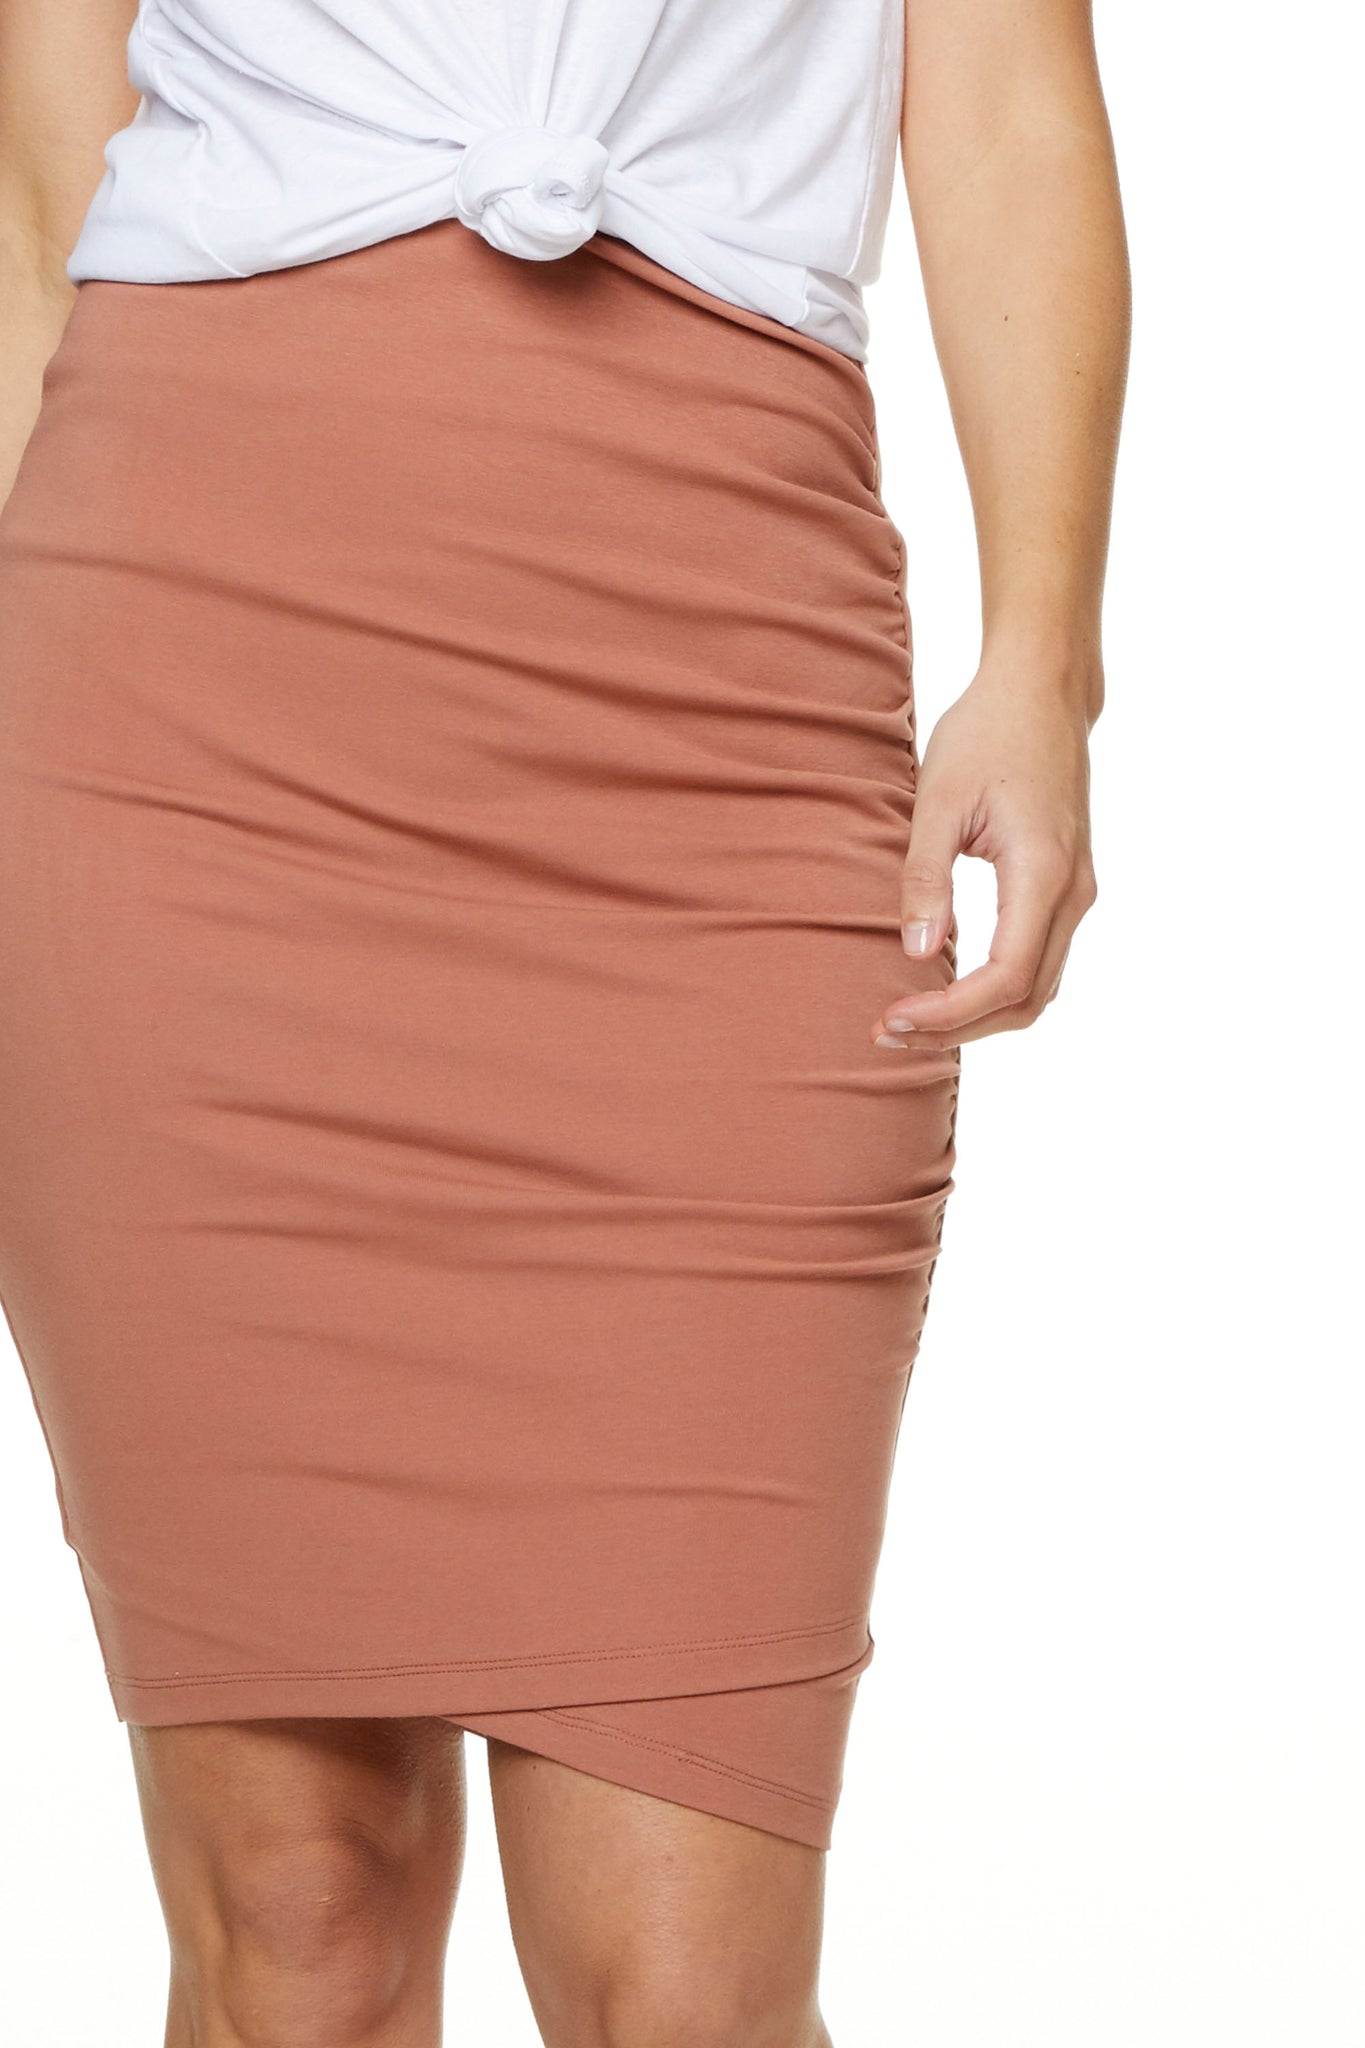 Bodycon Maternity Skirt Image 6